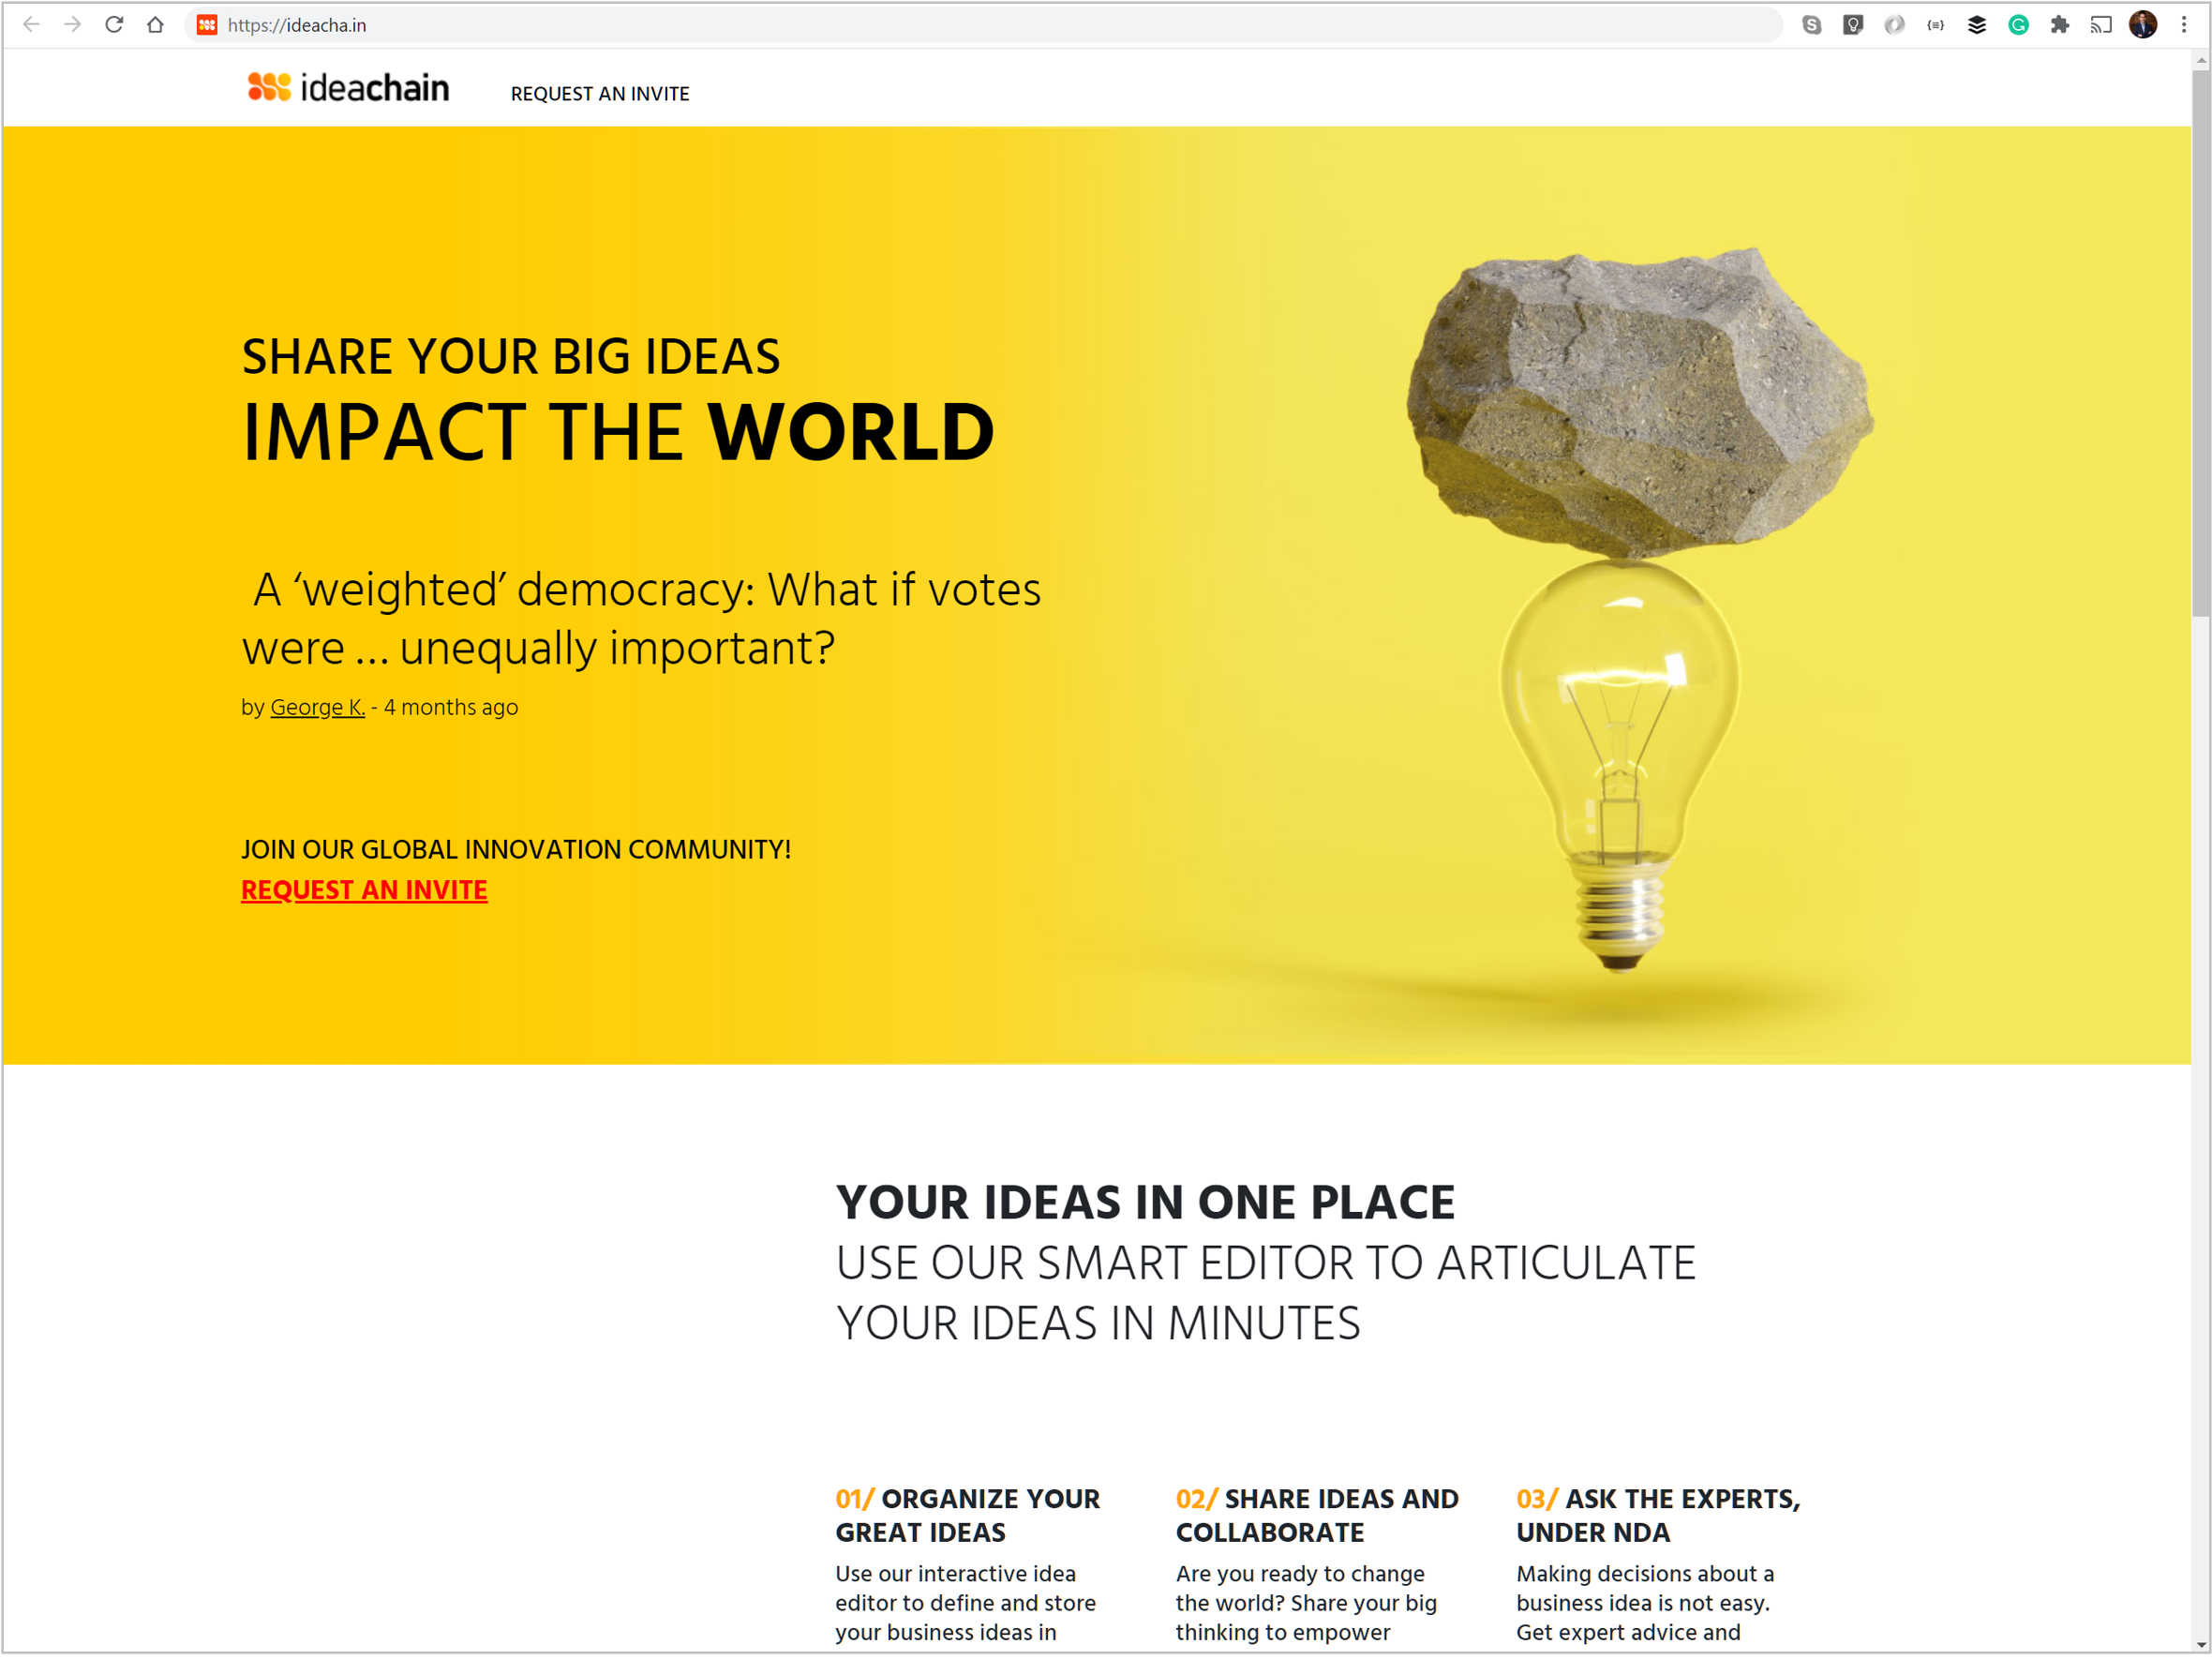 The homepage of the ideachain website — an open innovation concept